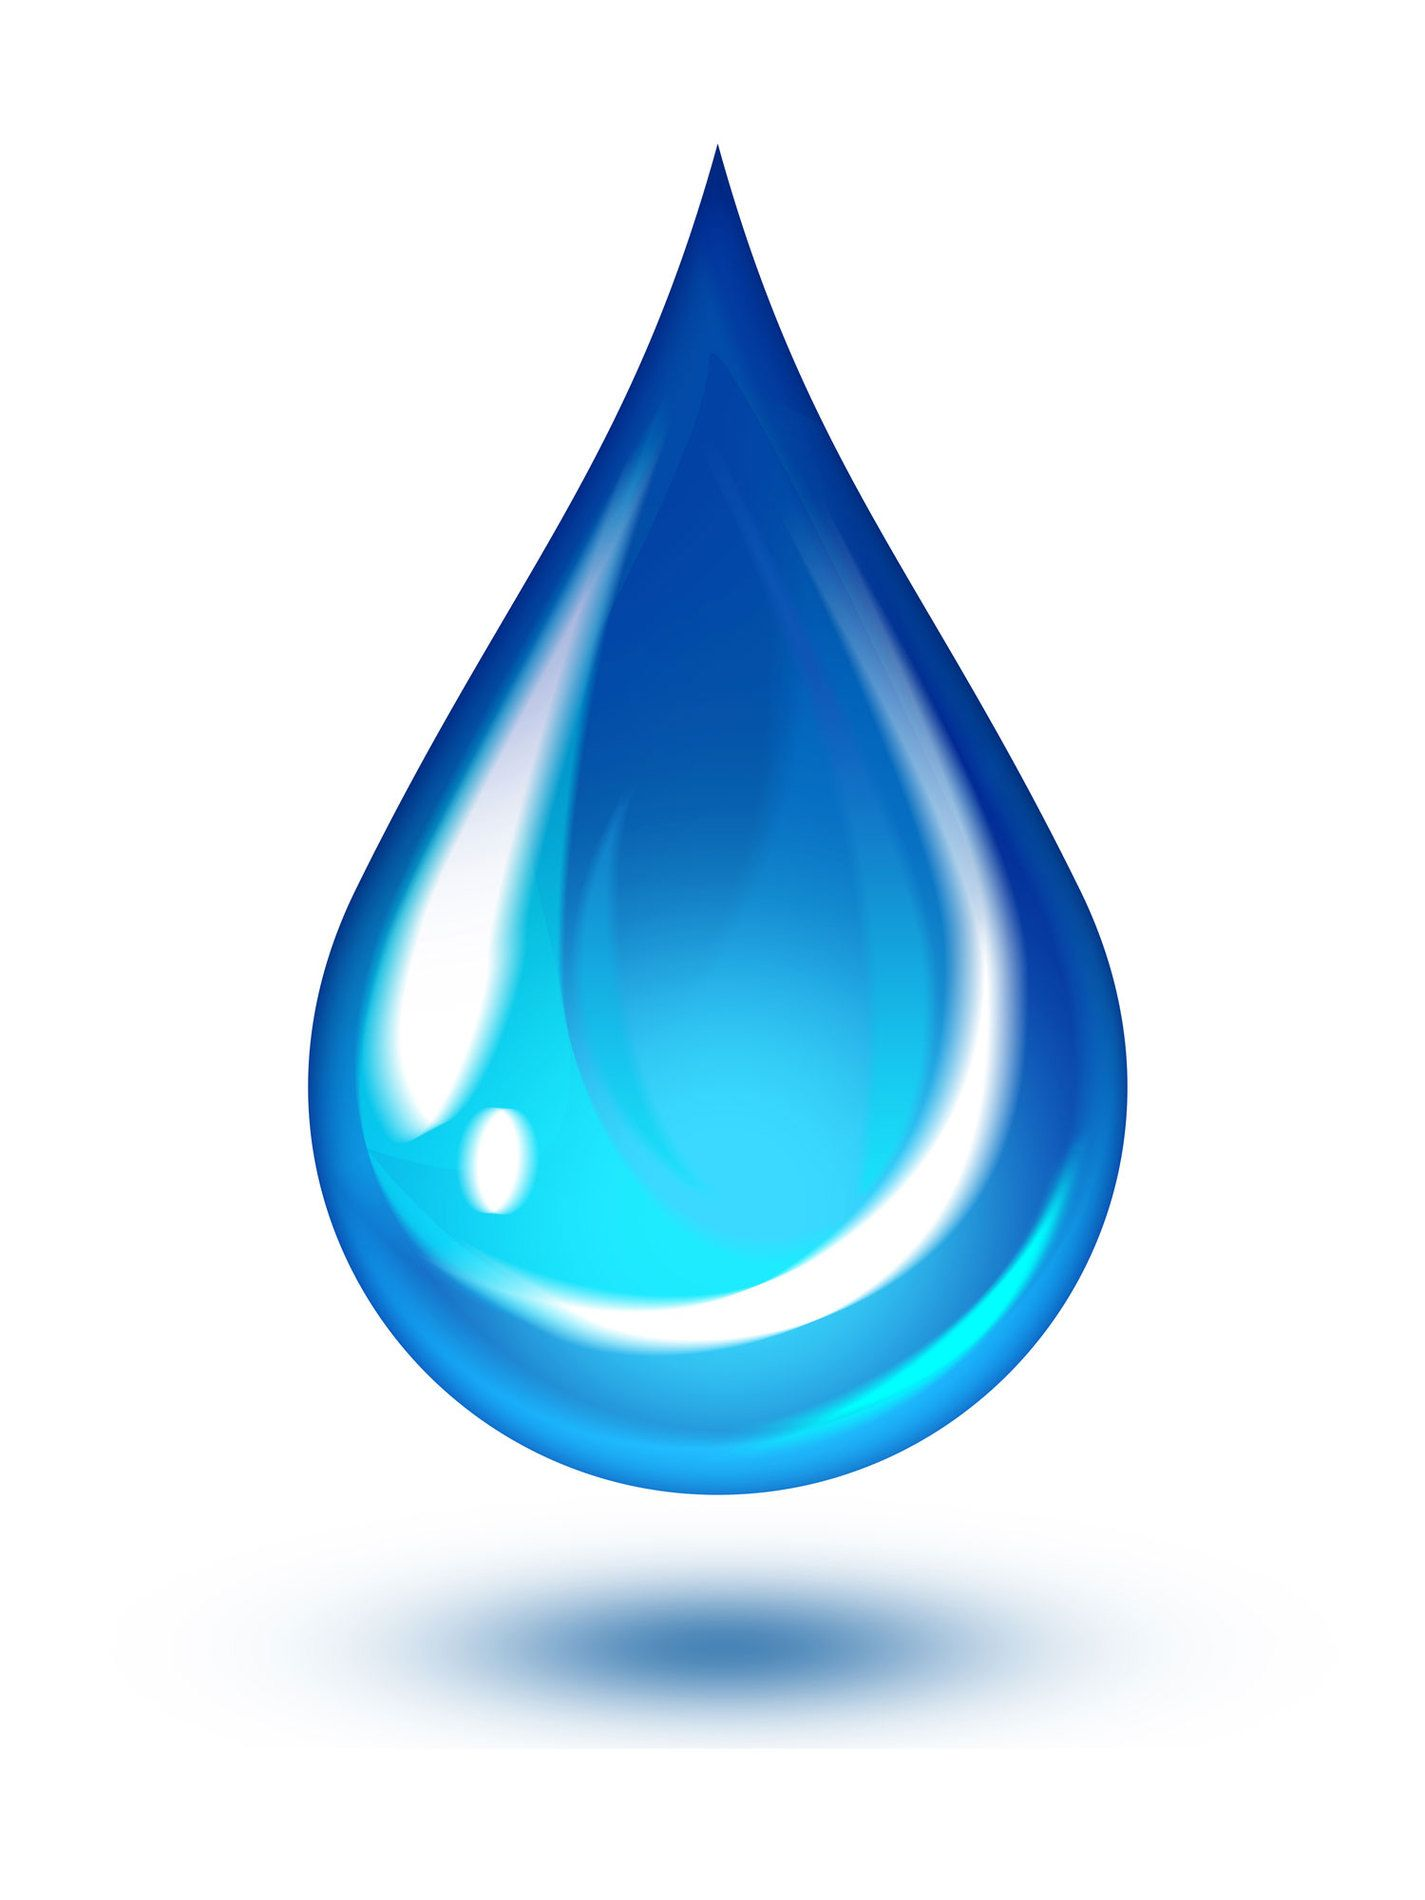 Water drop symbol clipart free to use clip art resource in.